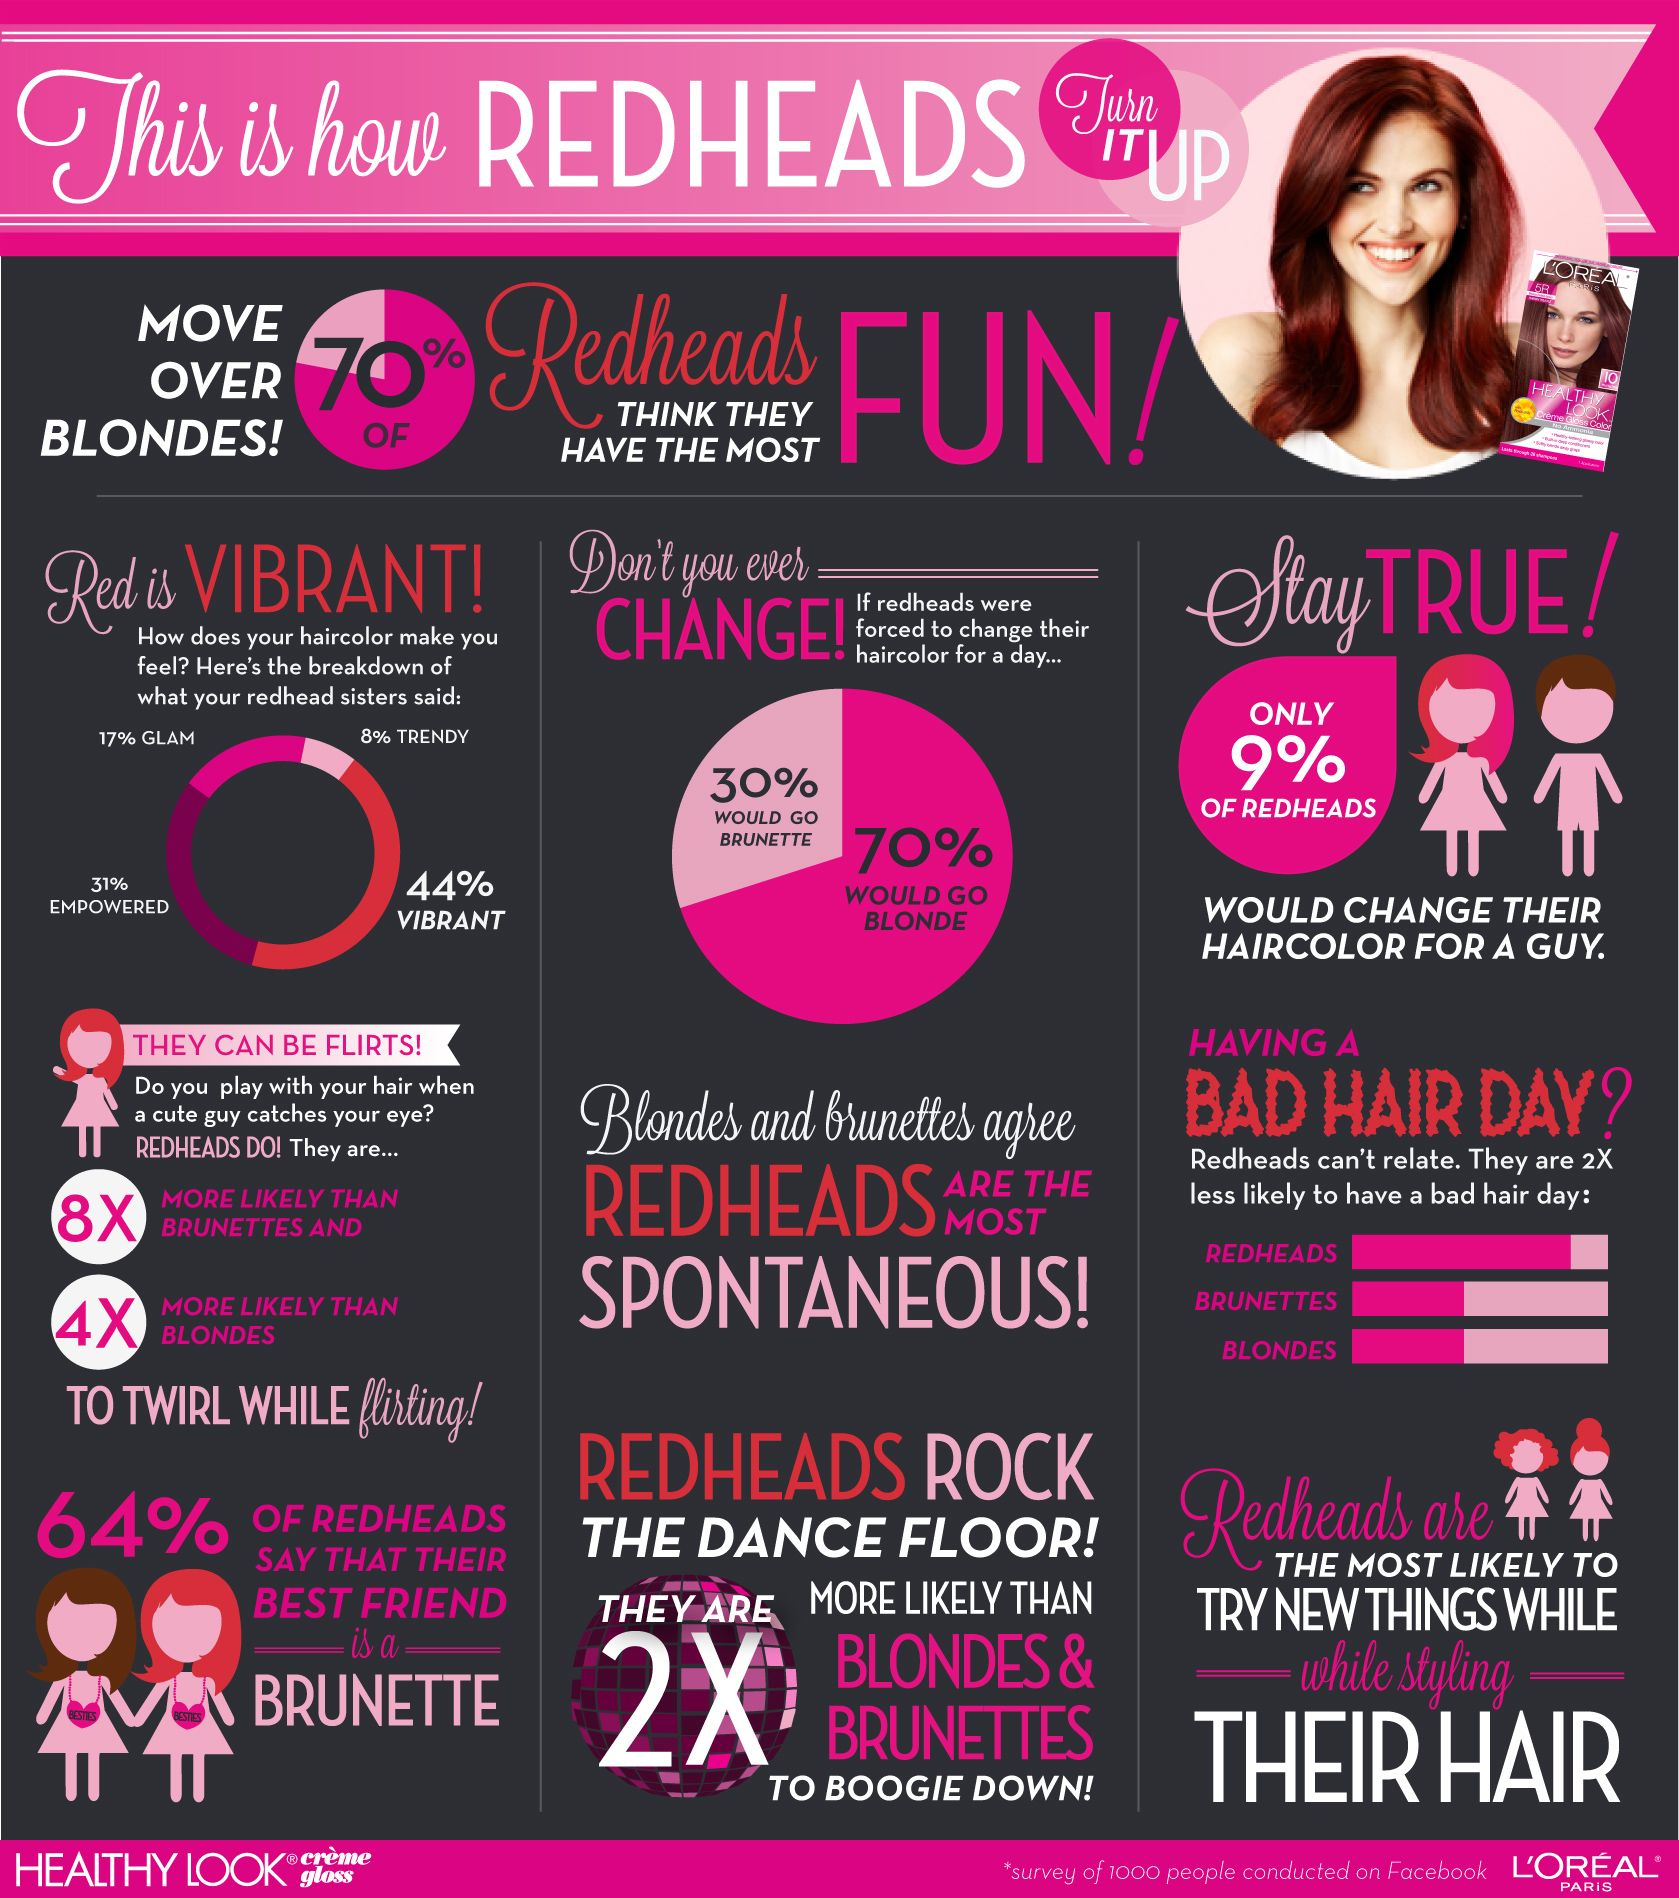 Funny facts about redheads